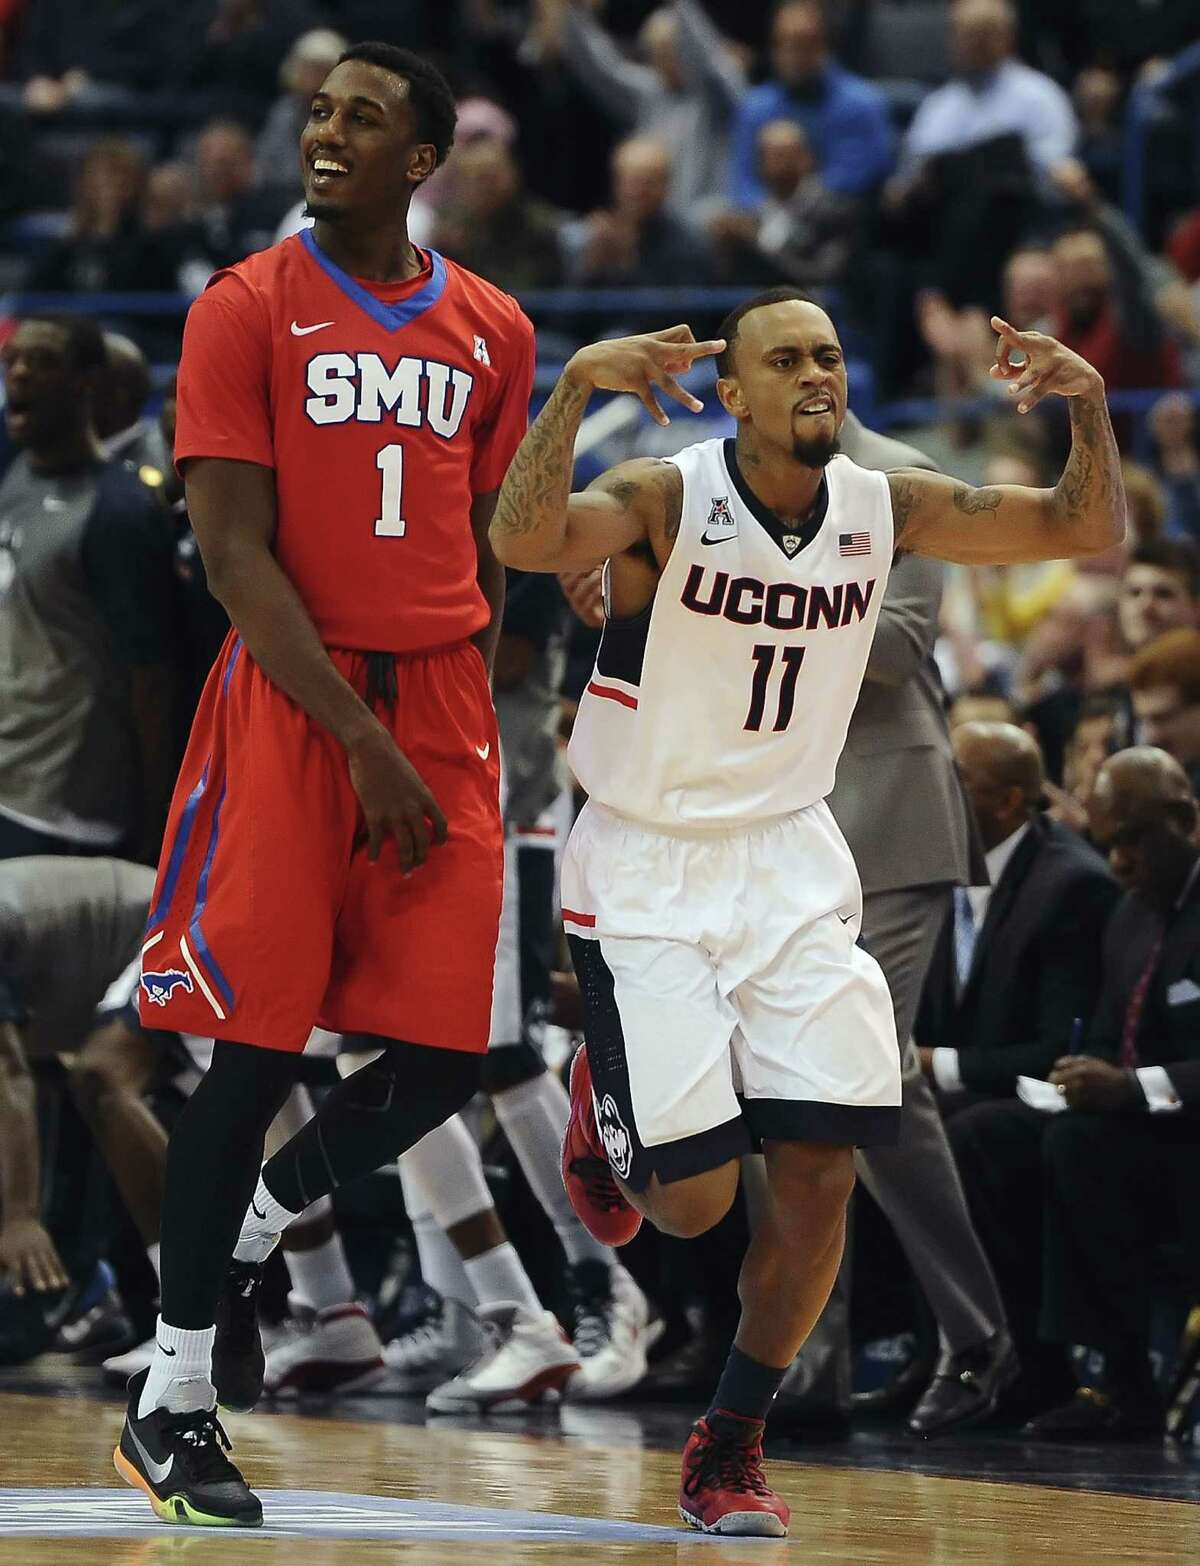 Connecticut's Ryan Boatright, right, reacts to hitting a three-point basket as he runs by SMU's Ryan Manuel, left, during the second half of an NCAA college basketball game, Sunday,March 1, 2015, in Hartford, Conn. UConn won 81-73. (AP Photo/Jessica Hill)